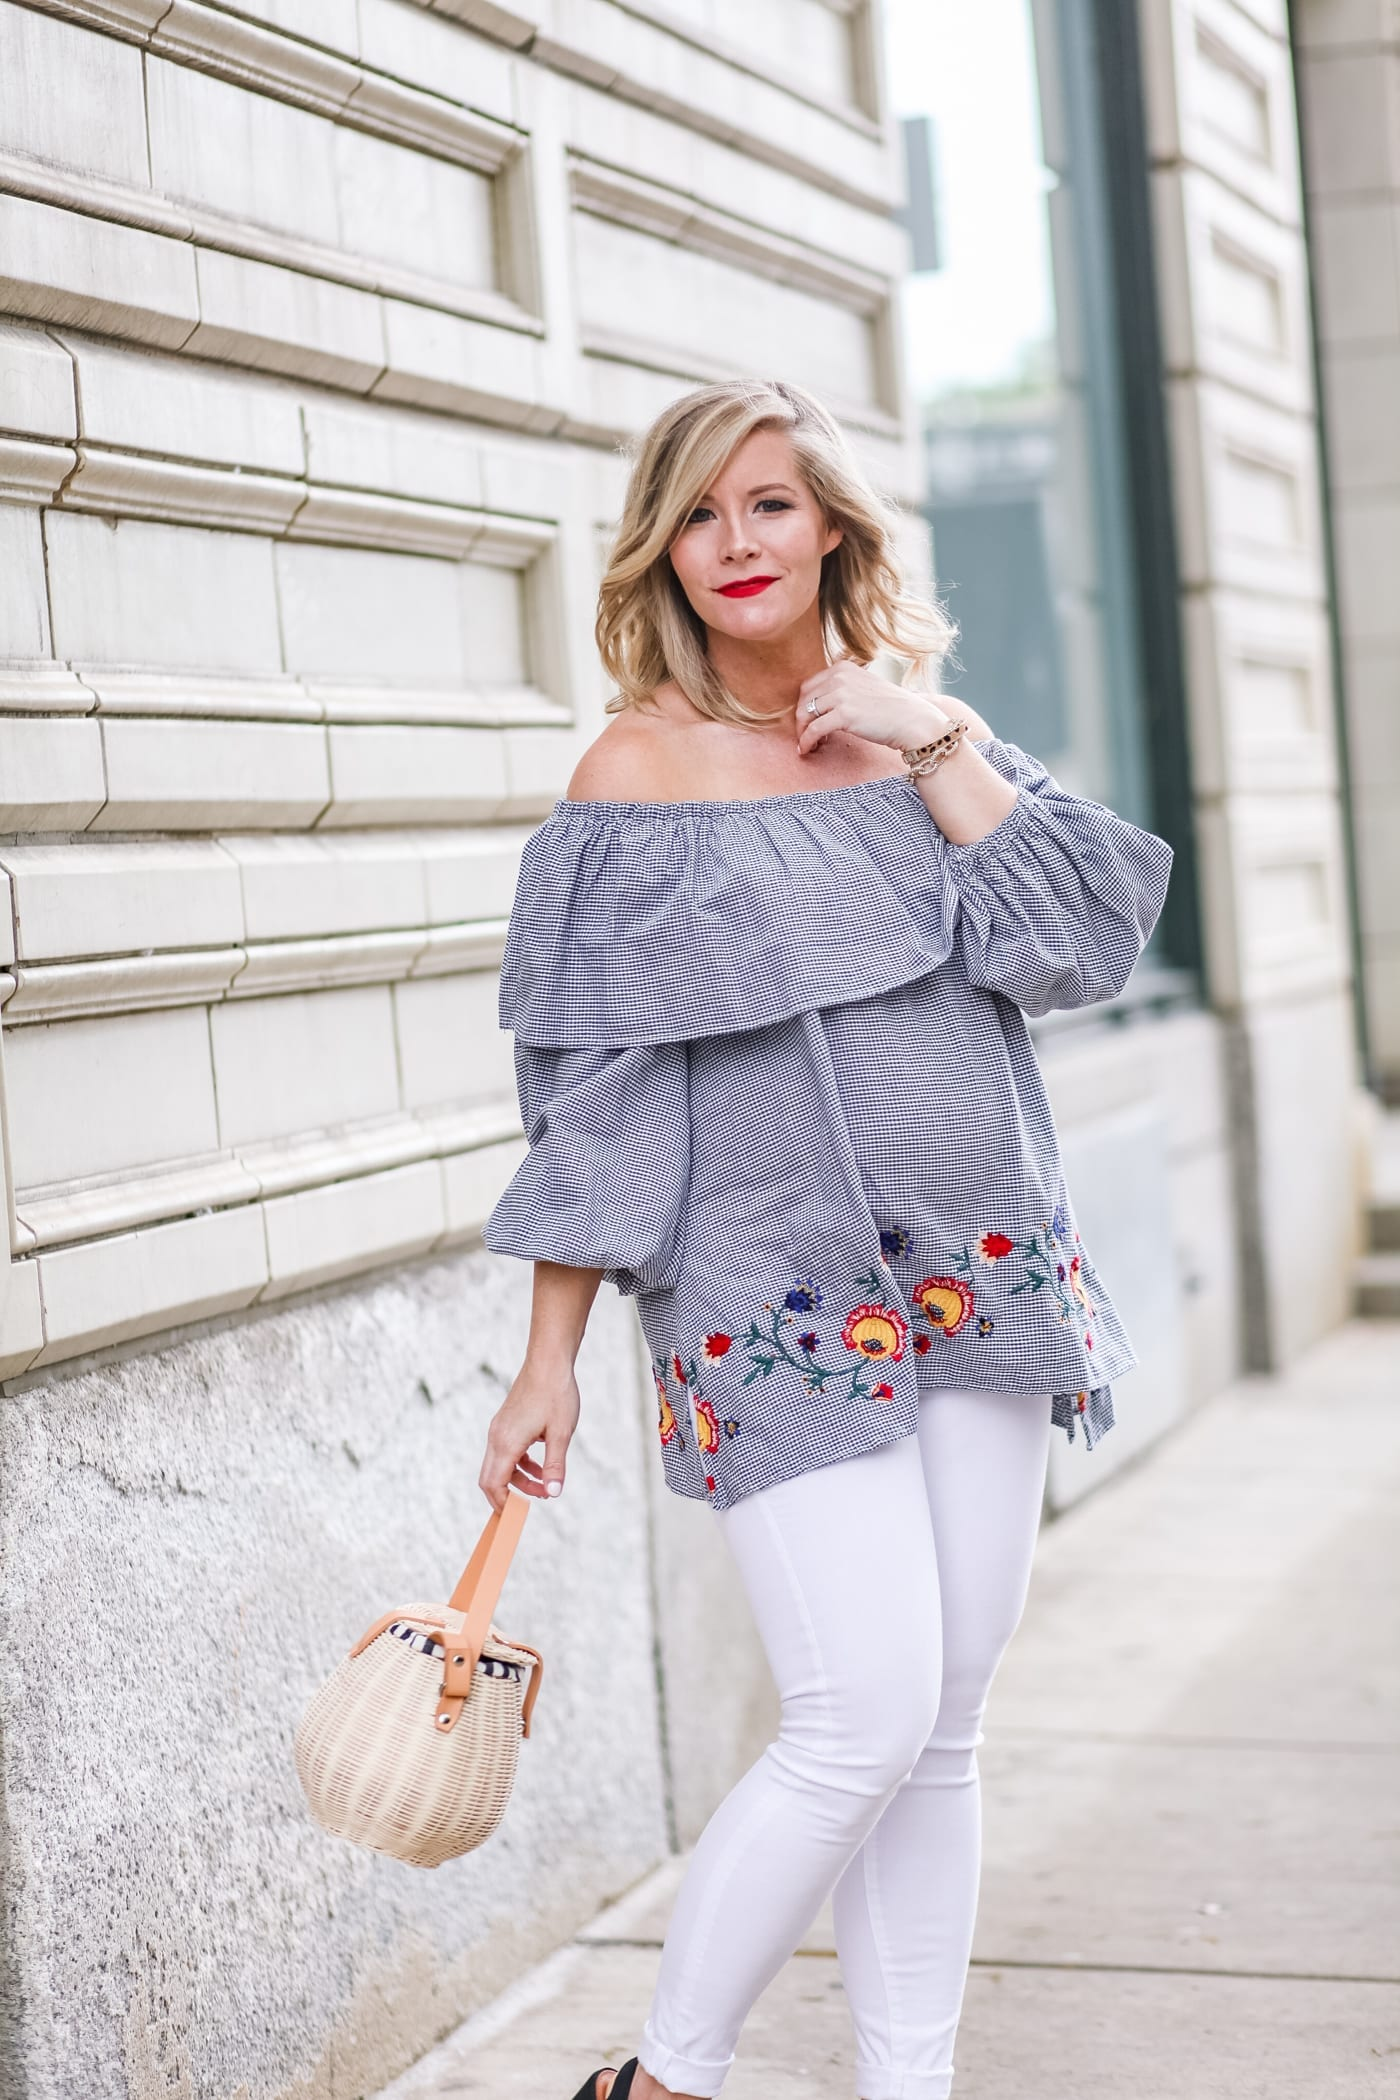 Summer Trends: Gingham Off the Shoulder Tops and Basket Bags